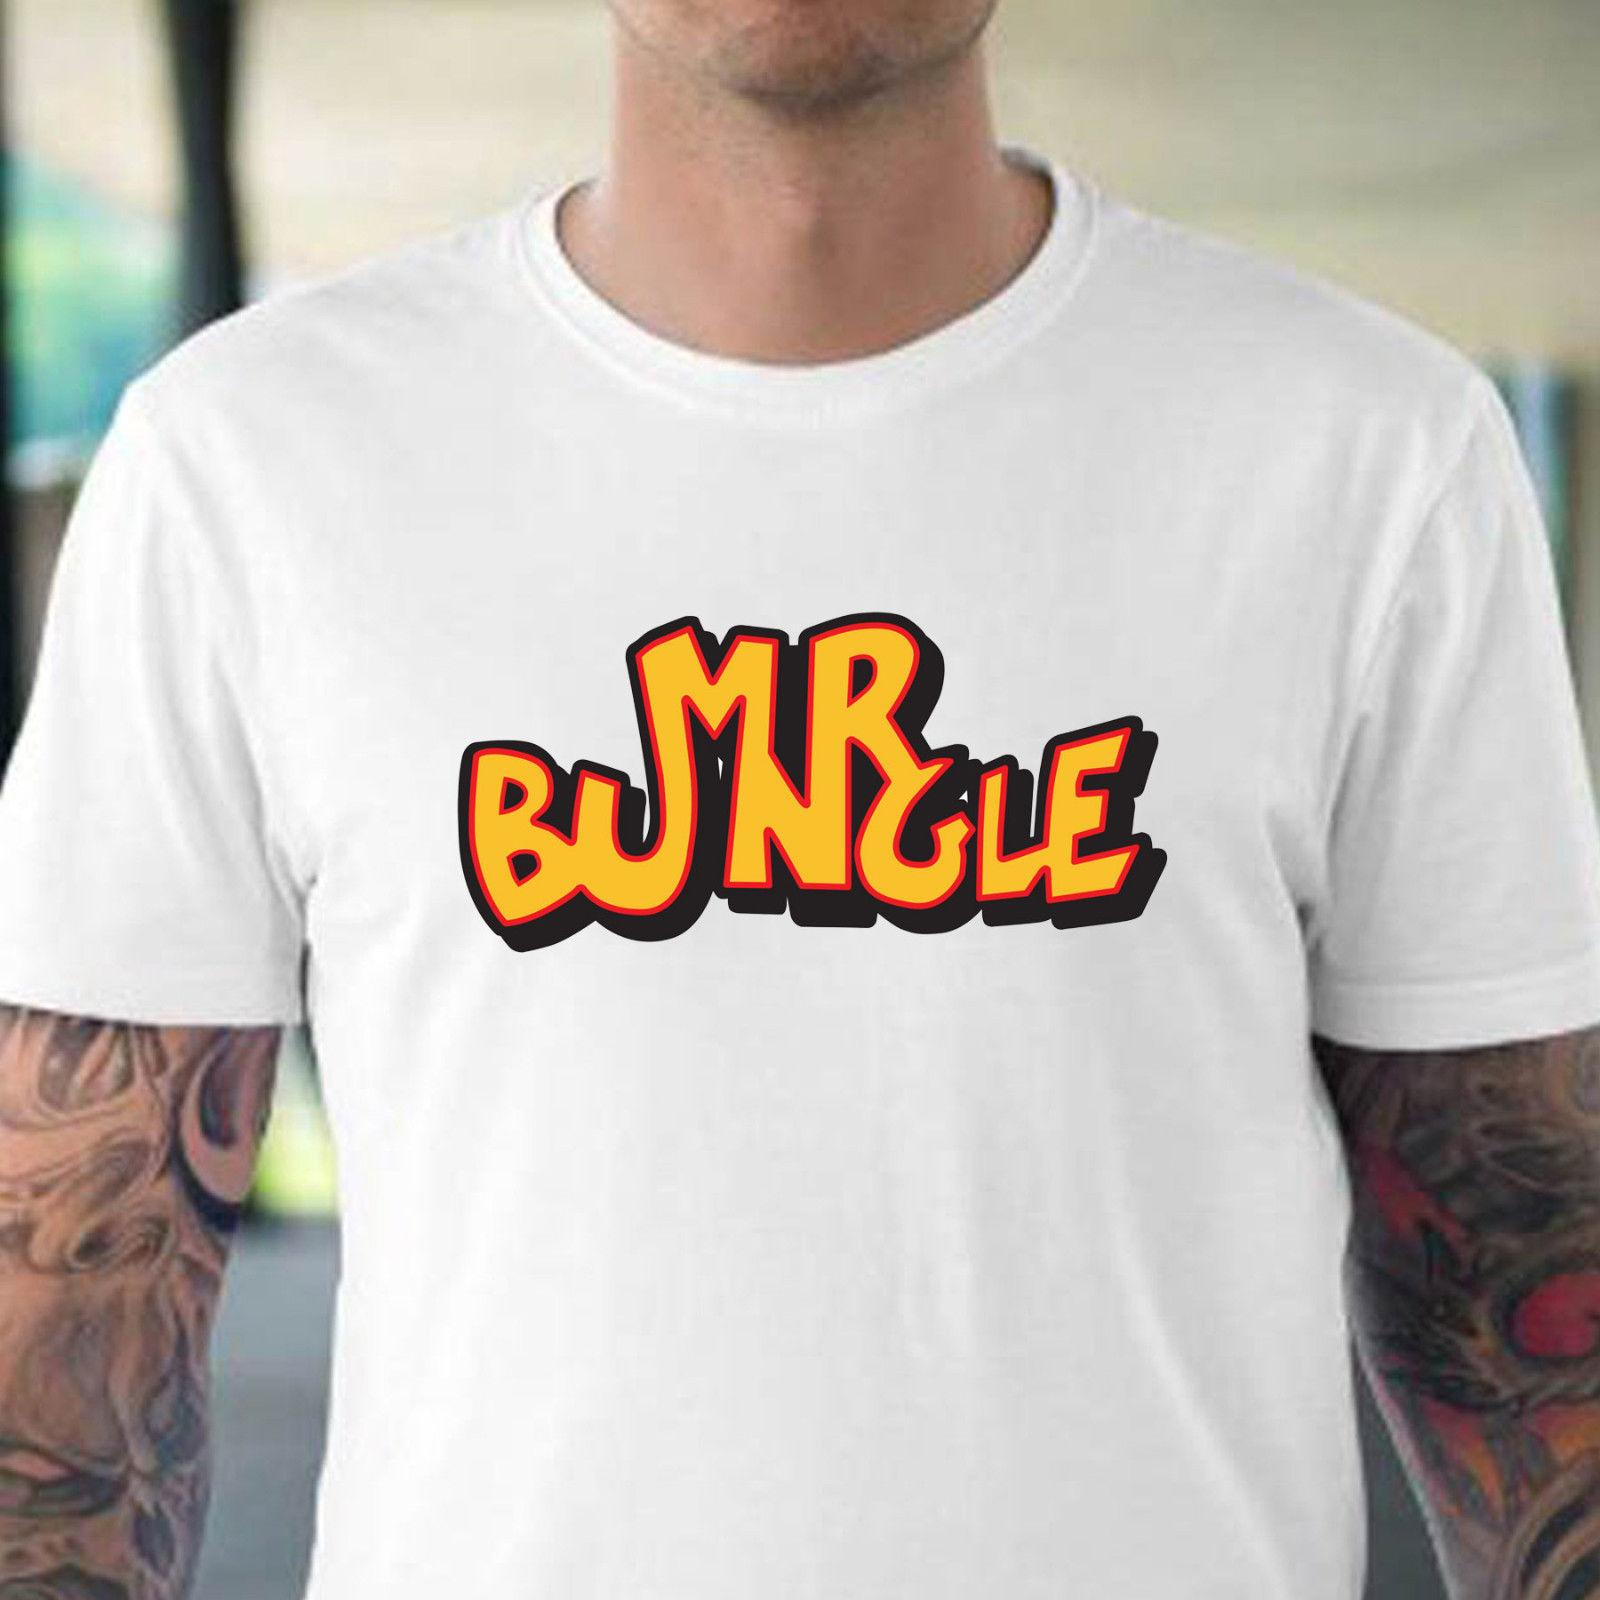 a1c47c81fff MR BUNGLE LOGO FUNNY Men White T Shirt 100% Cotton Graphic Tee Short  SleeveMen Women Unisex Fashion Tshirt Coolest Shirts Funny T Shirt Slogans  From ...